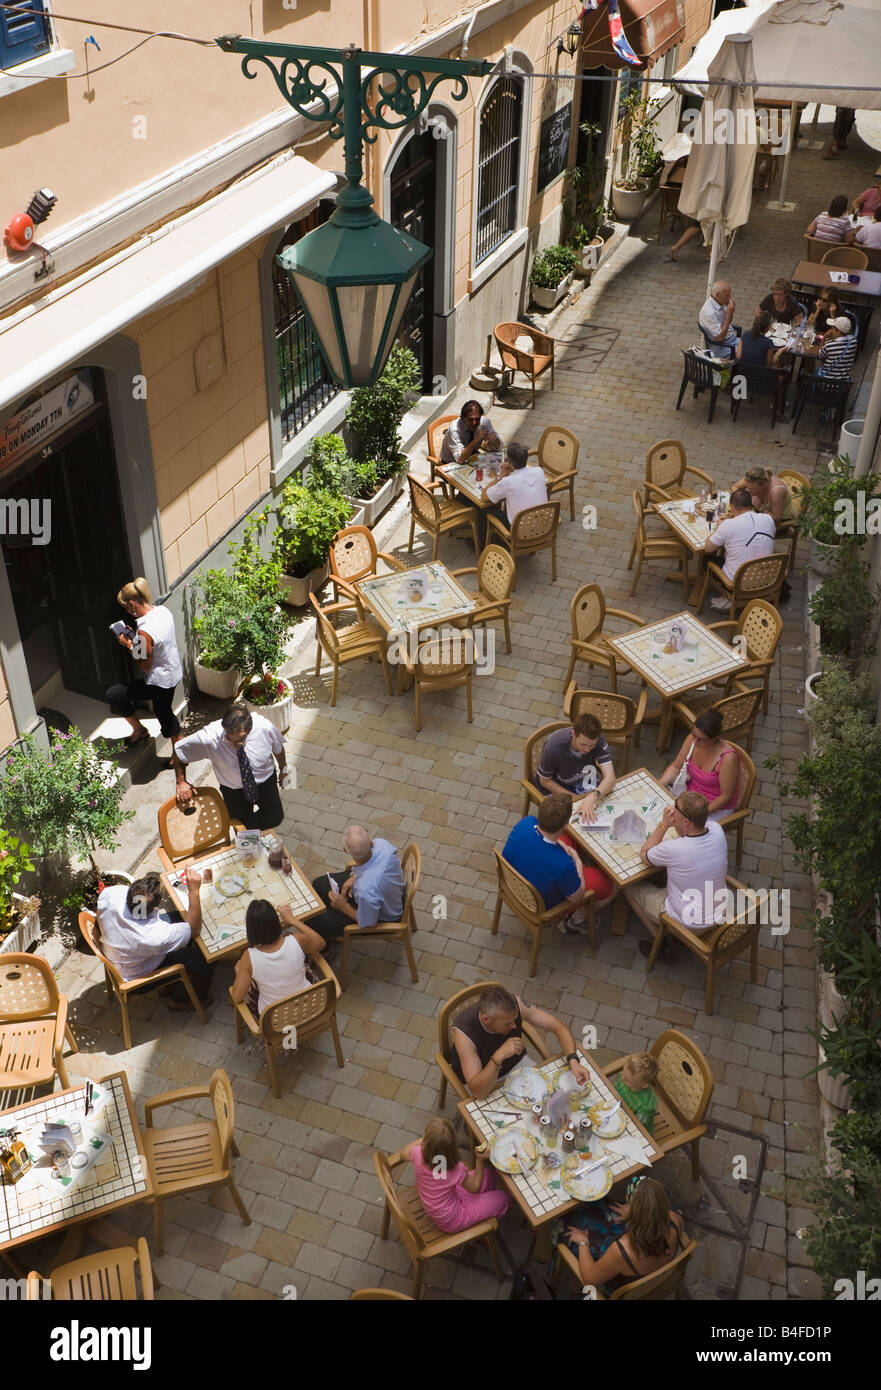 Gibraltar Diners and tables on street outside Temptations restaurant - Stock Image